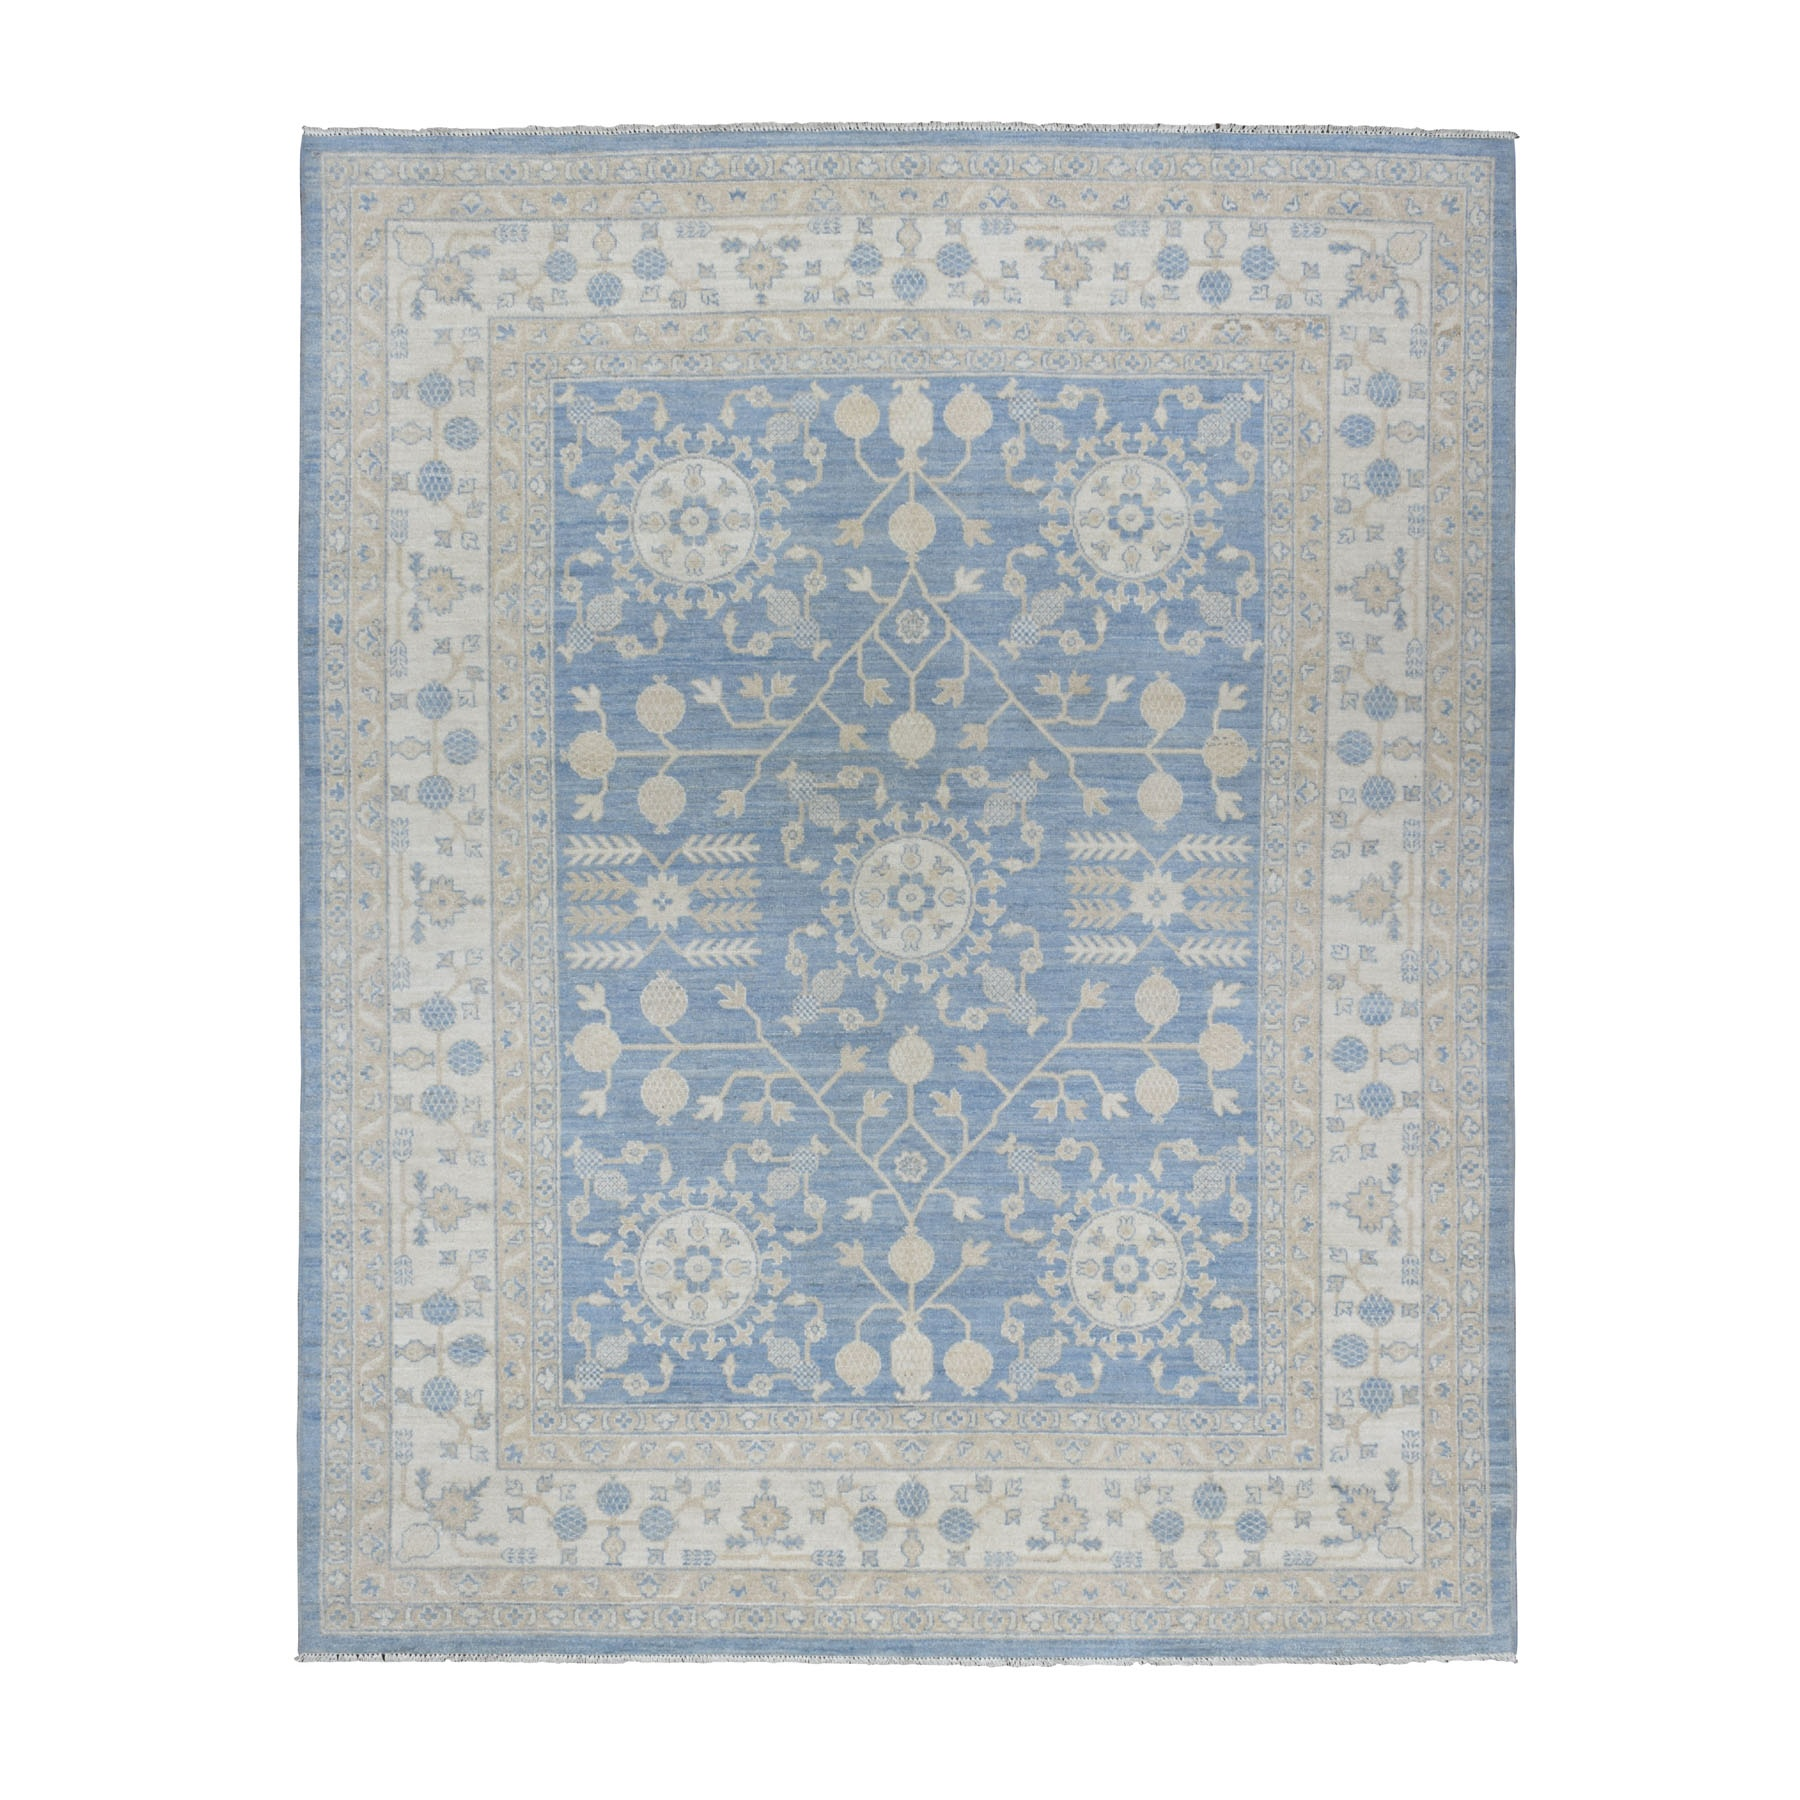 "8'x9'9"" Blue Stone Wash Peshawar with Khotan Design Pure Wool Hand Woven Oriental Rug"